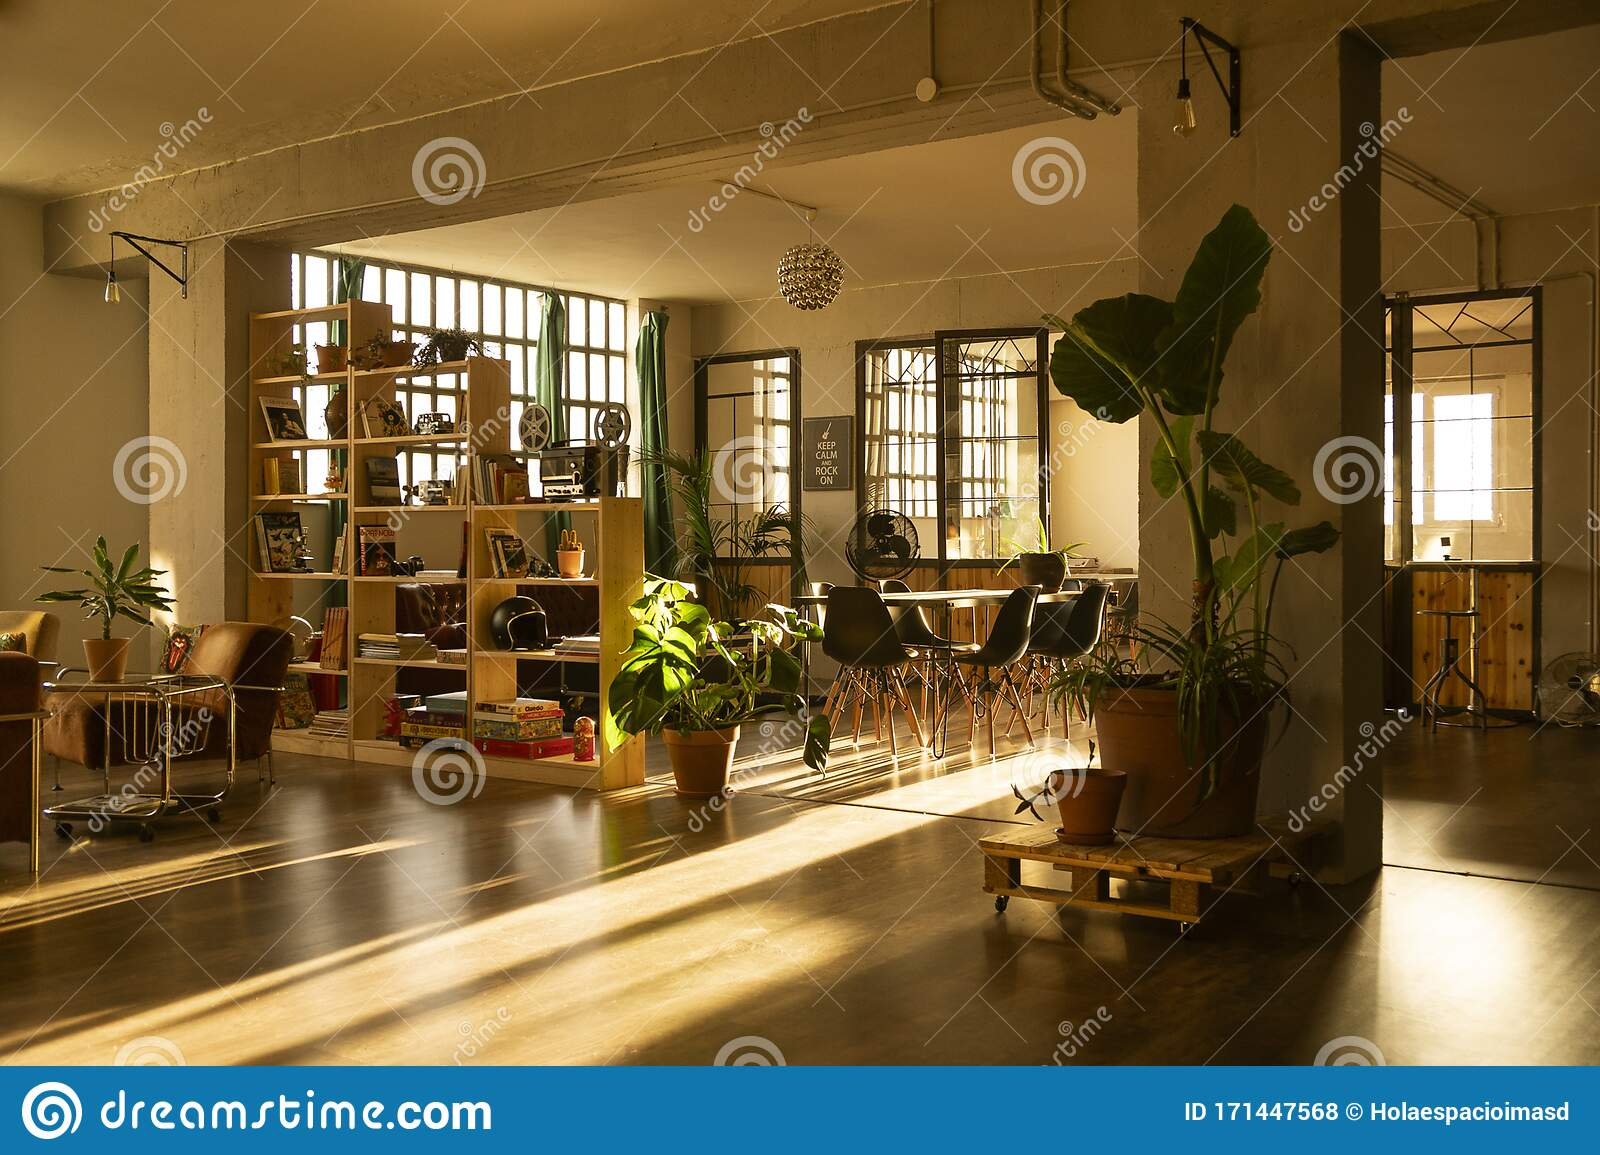 Industrial Design Loft With Large Windows And Coworking Office Area Dawn Light Interior Design Living Room At Home Stock Photo Image Of Design Chair 171447568